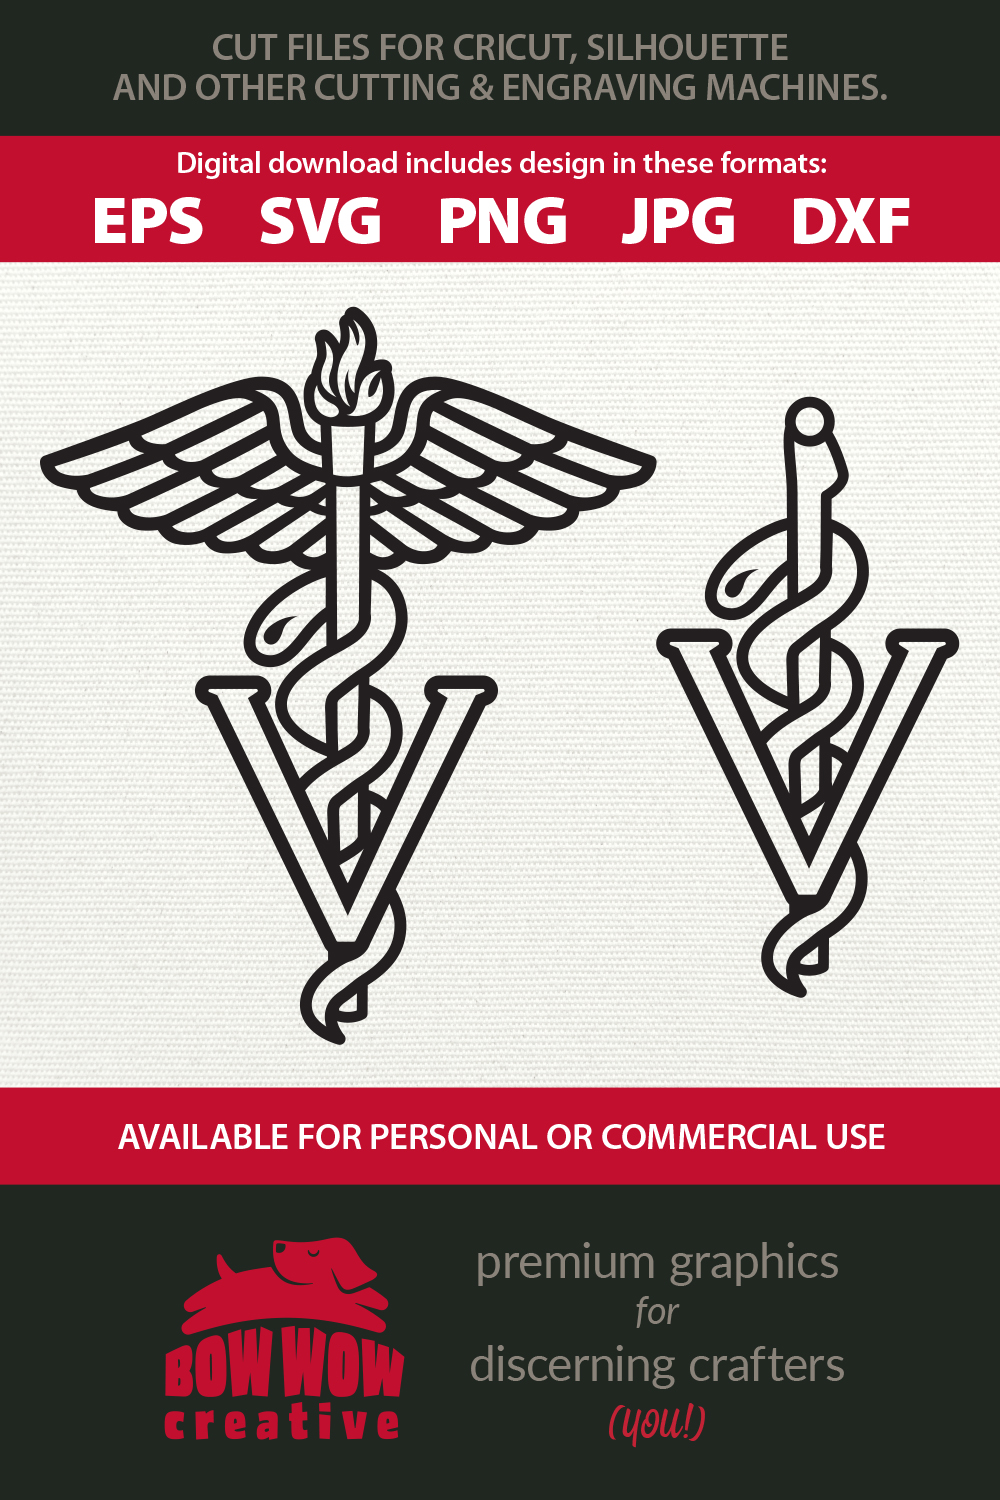 Veterinarian Caduceus Medical Staff - SVG, EPS, PNG, DXF example image 2